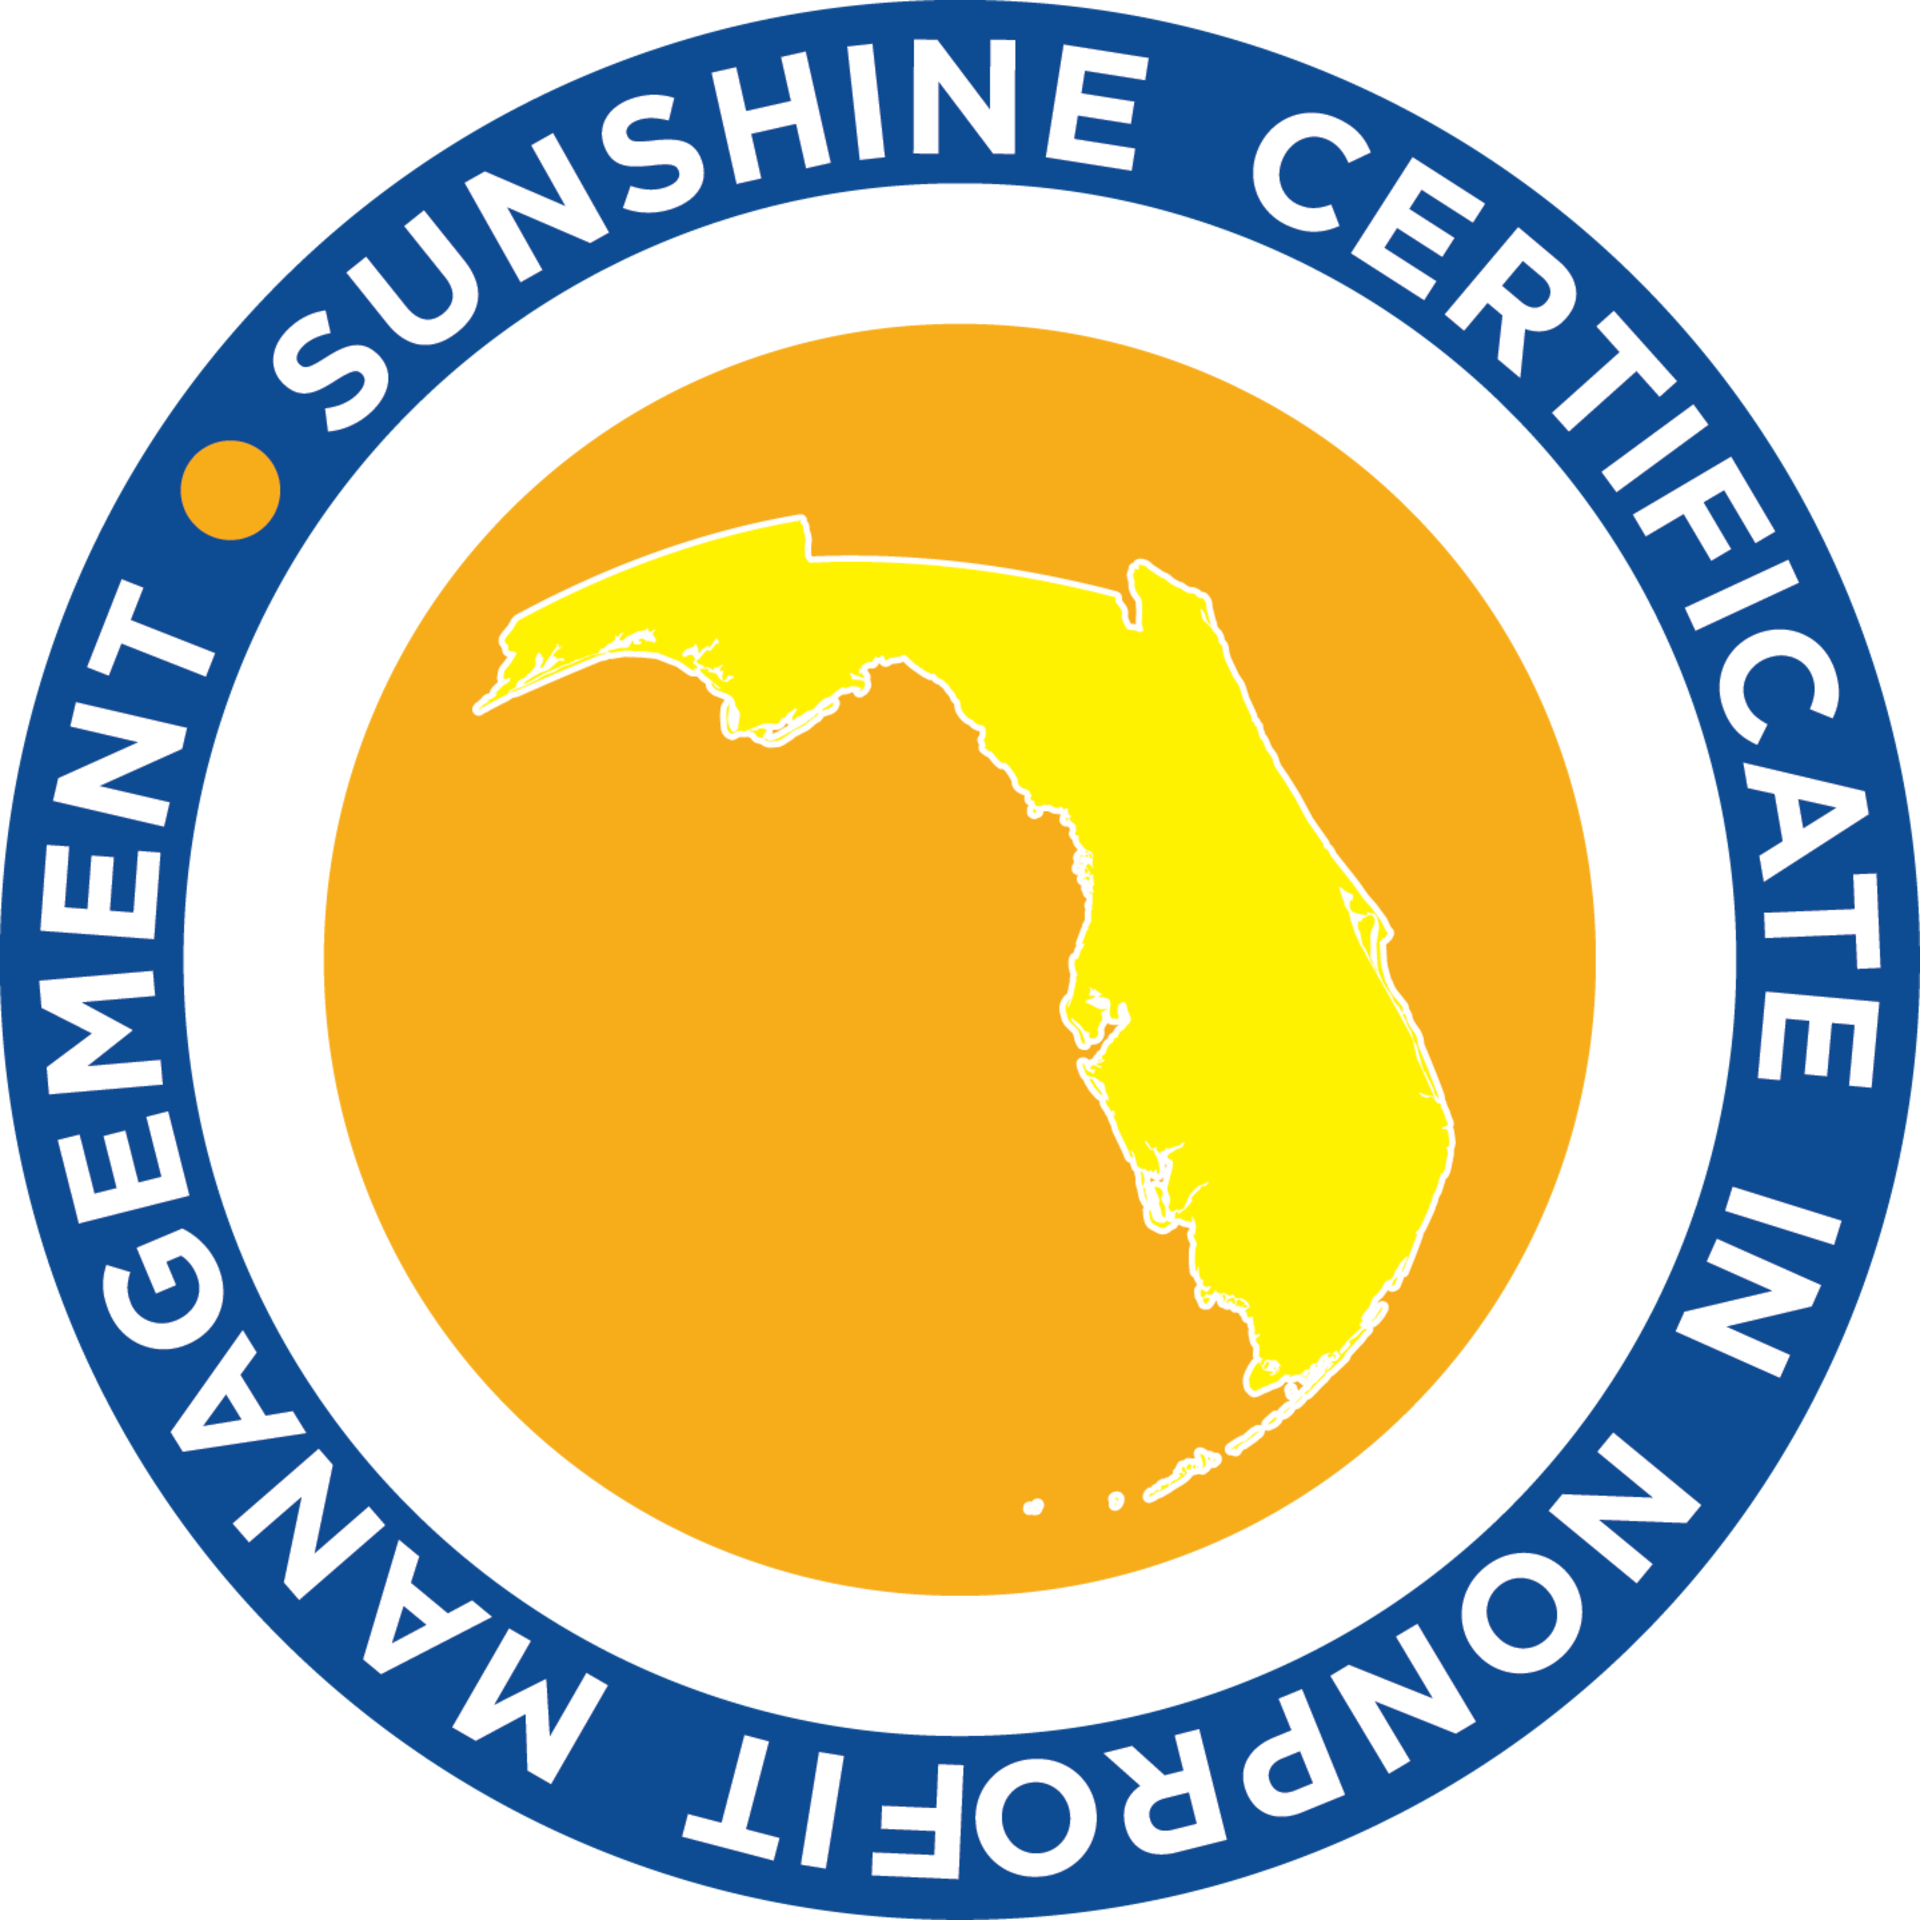 Florida Nonprofits' Sunshine Certificate in Nonprofit Management